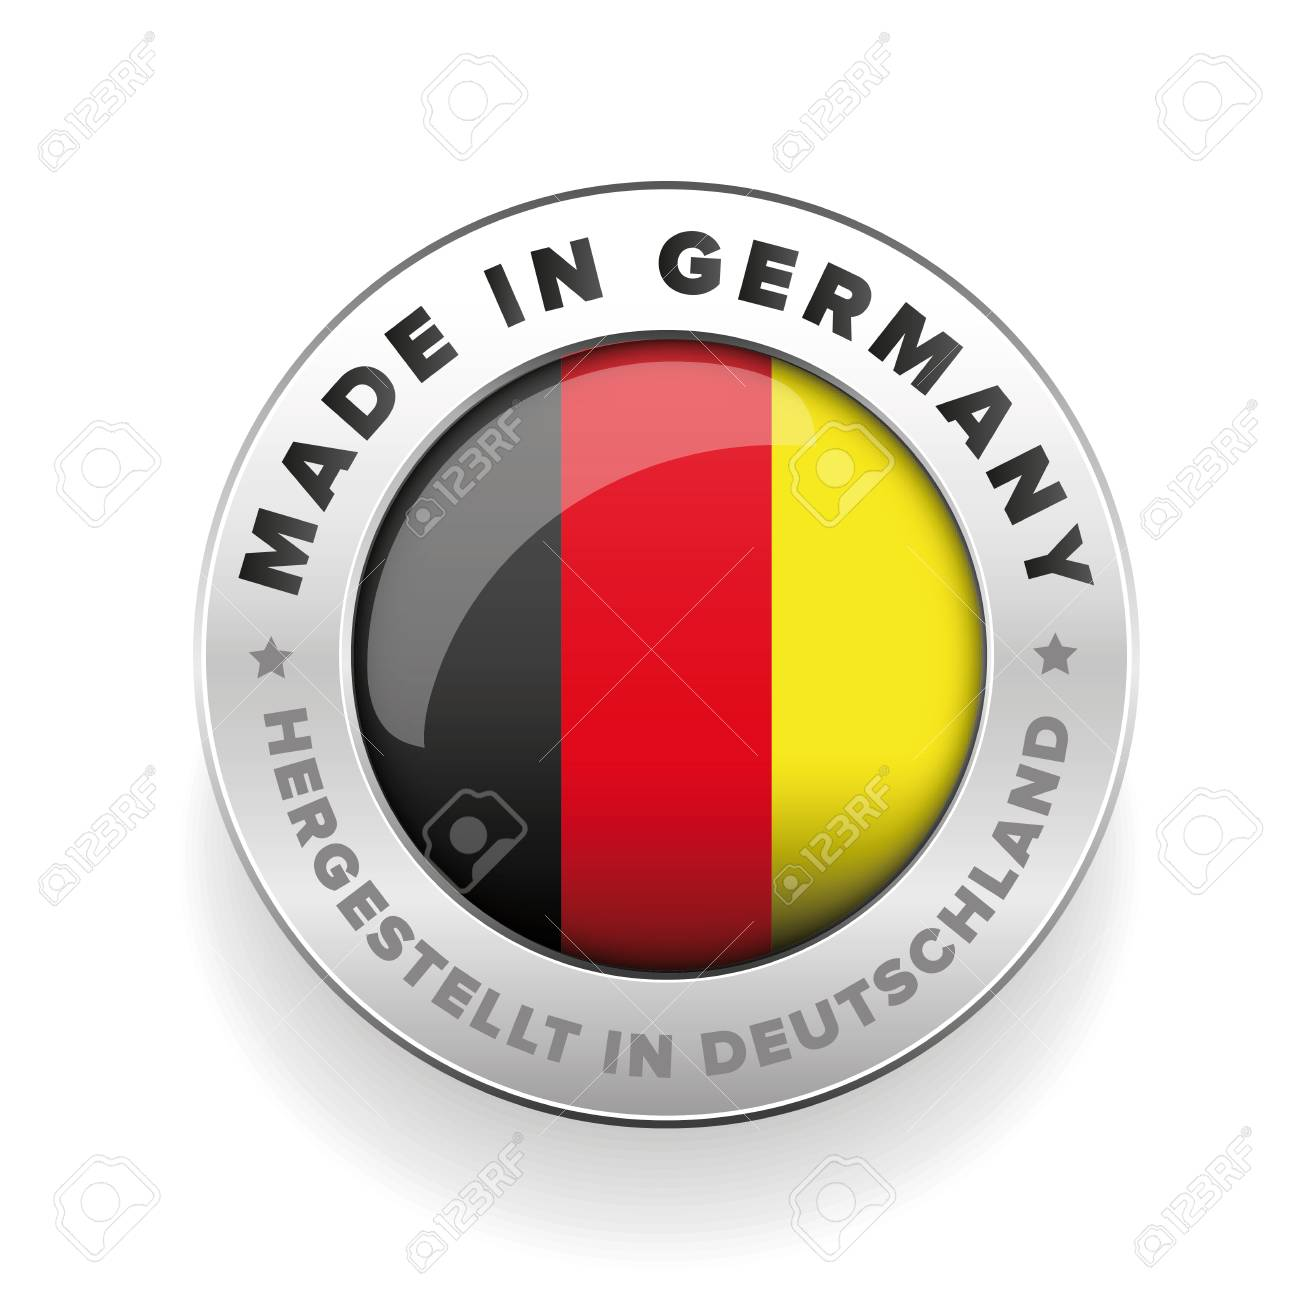 Made in Germany button vector - 59355612